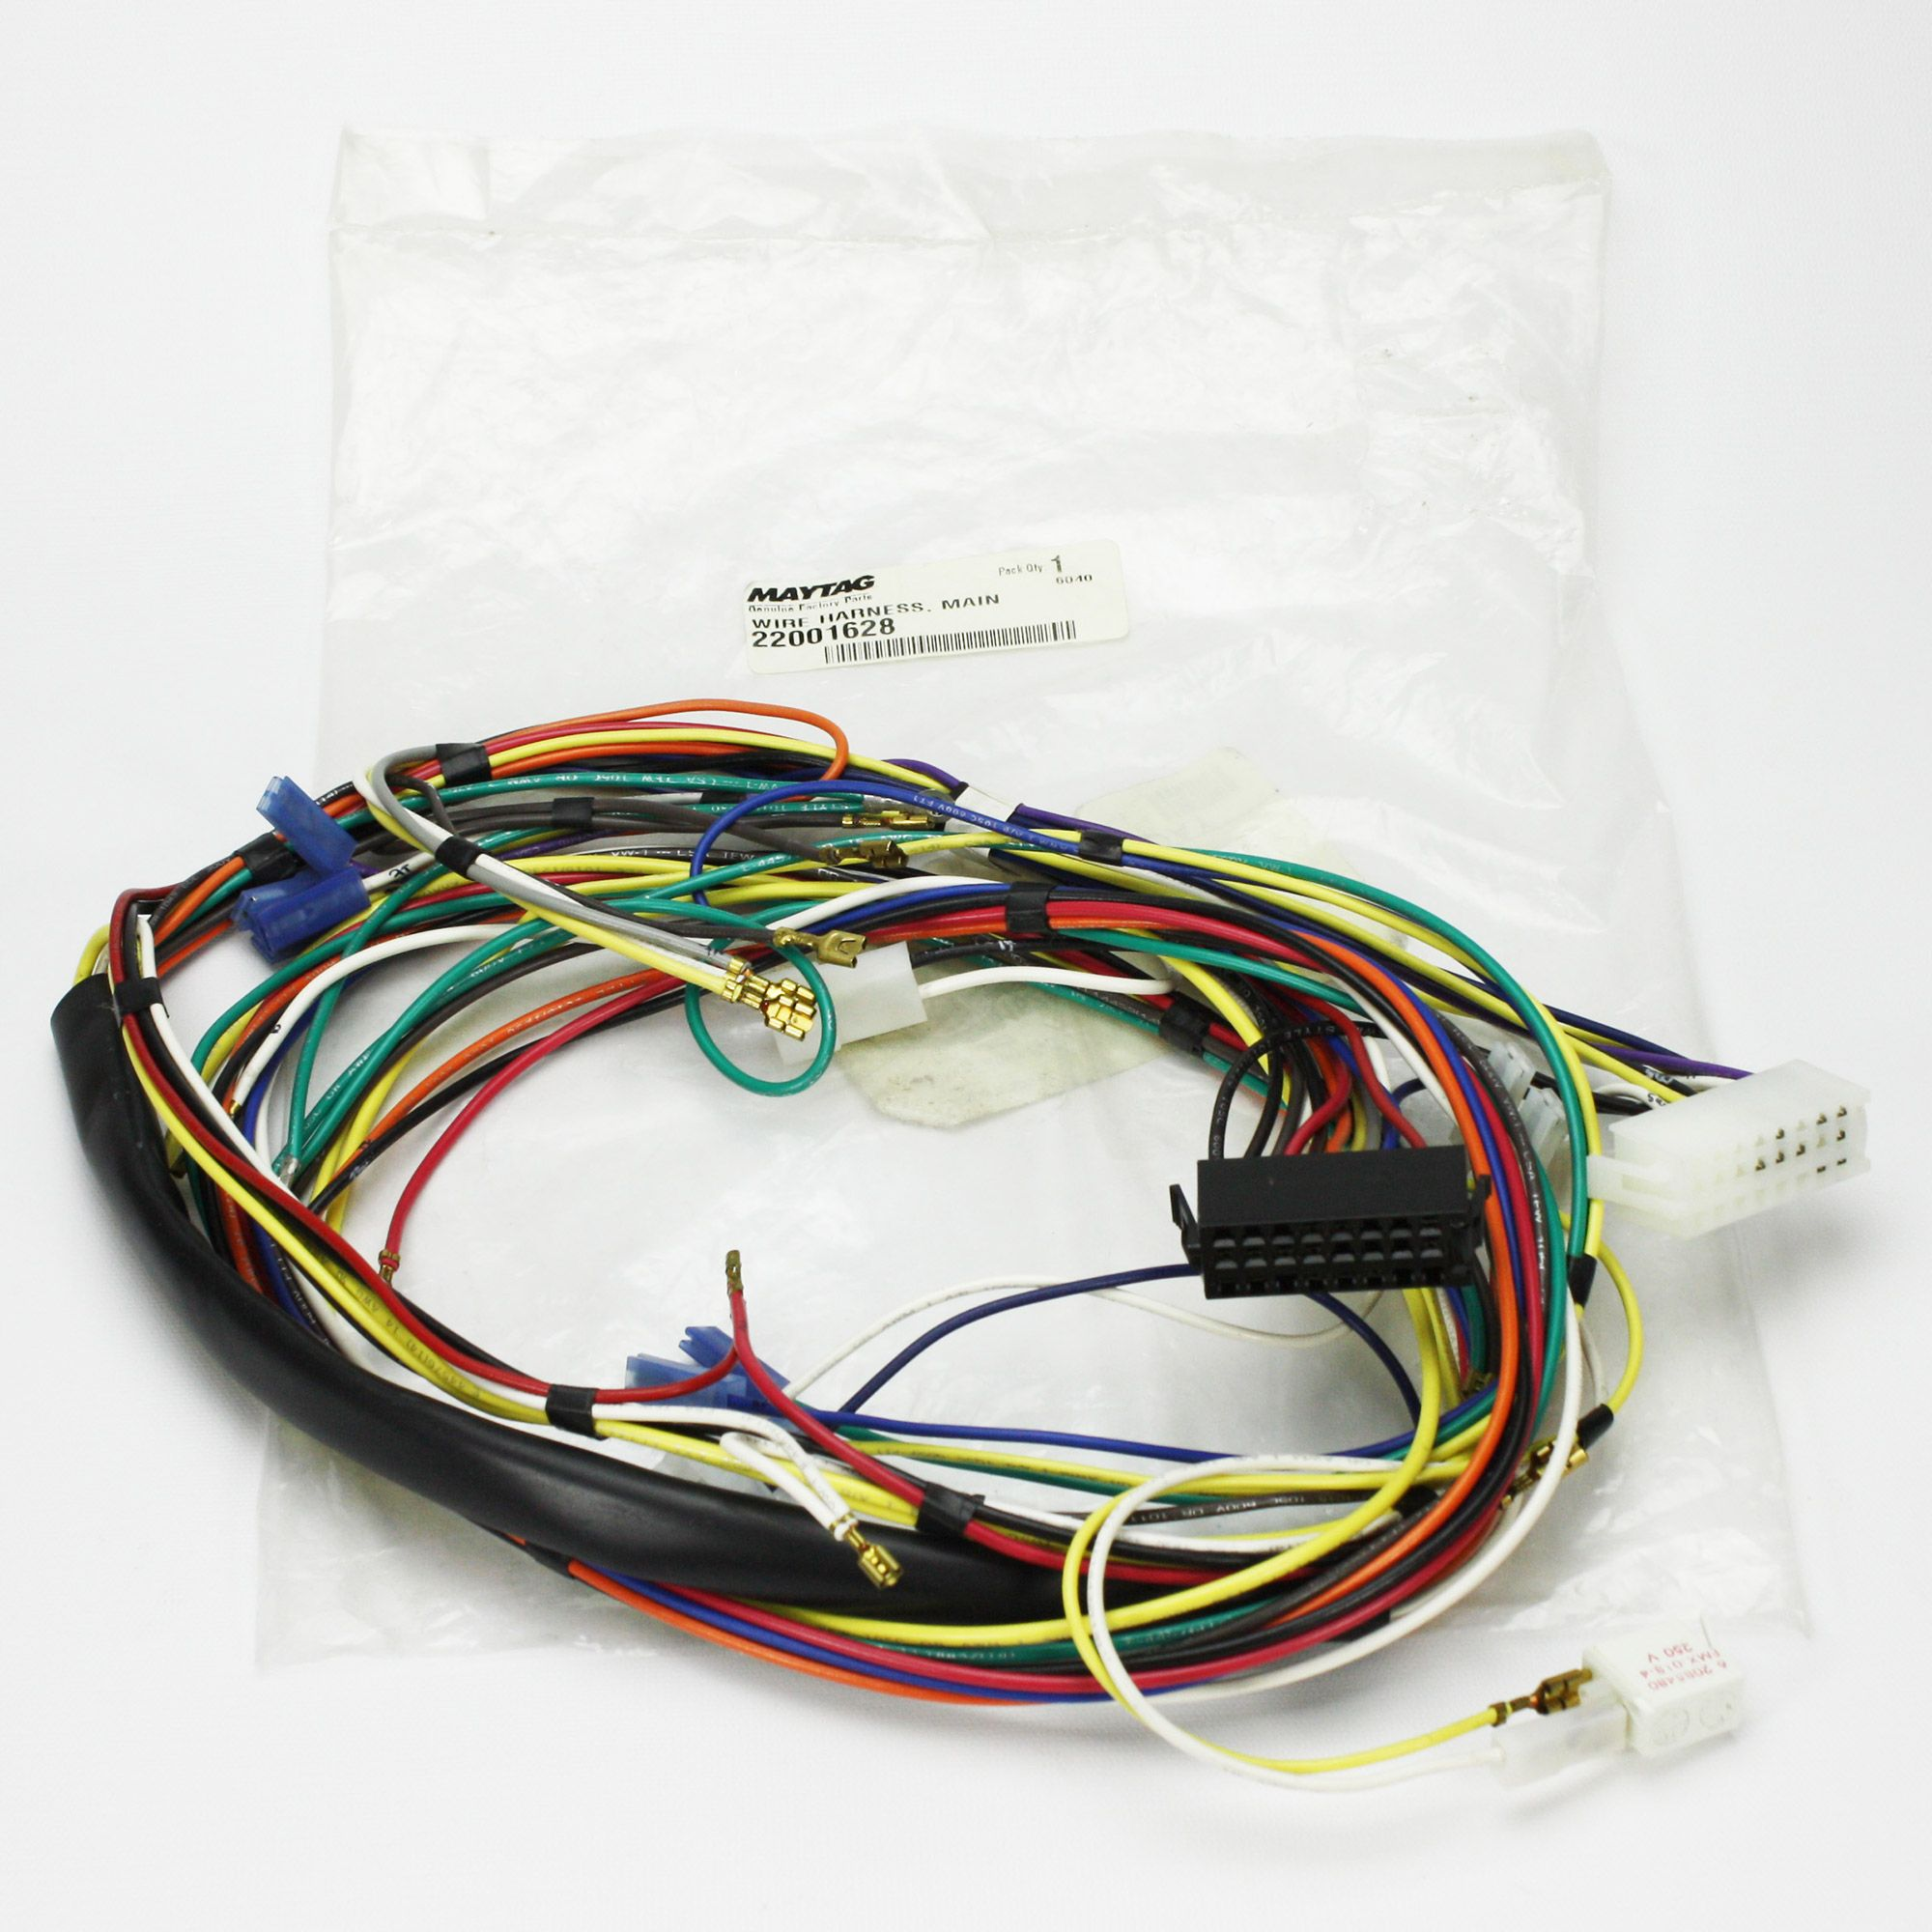 Washing Machine Wiring Harness Example Electrical Diagram Lg 22001628 Whirlpool Wire 648854929421 Ebay Rh Com General